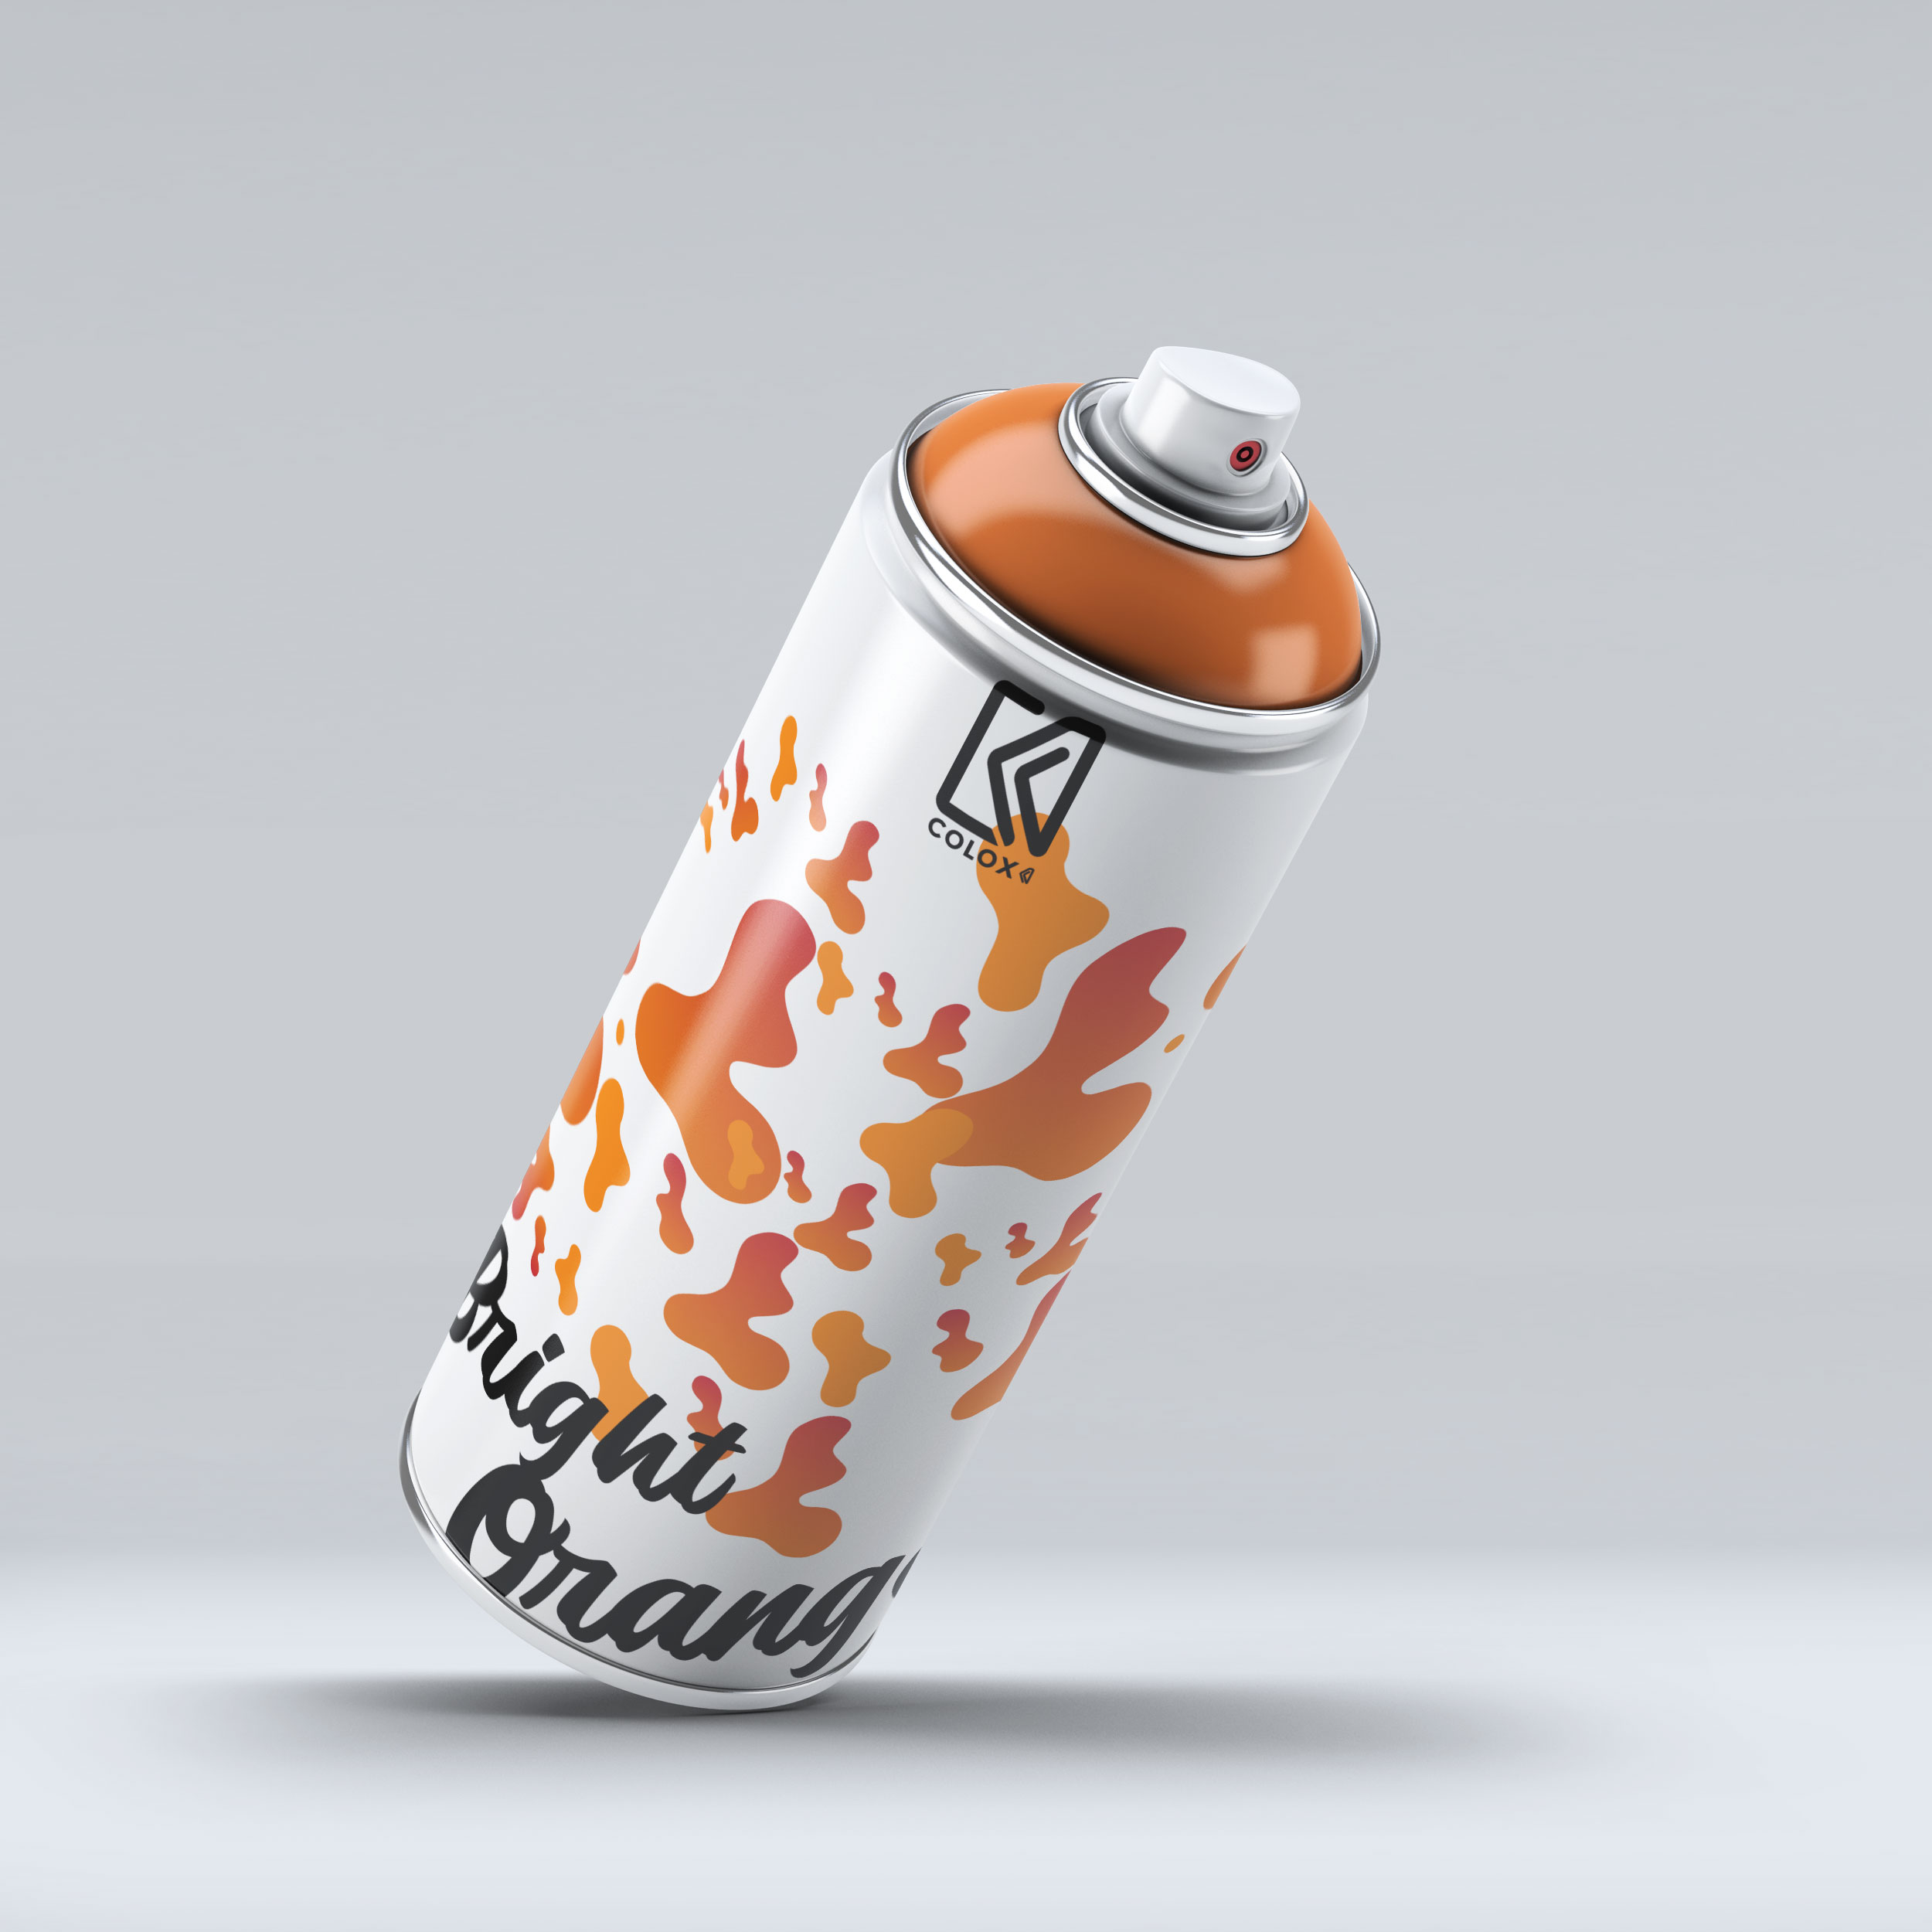 03-Spray-Paint-Mock-Up-v1.jpg